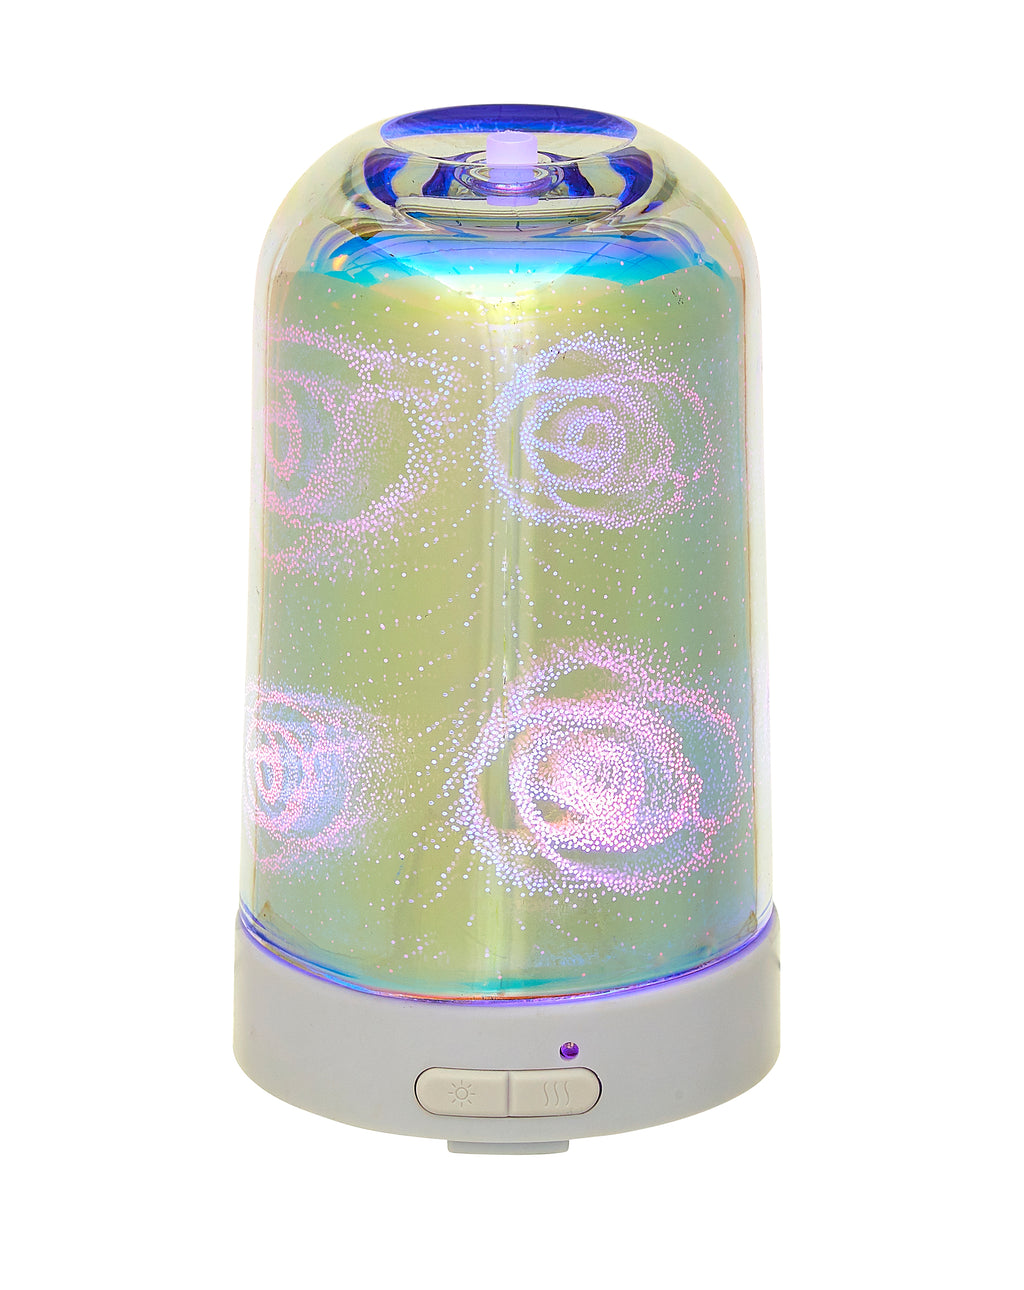 3D Glass Design Ultrasonic Oil Diffuser 100ml